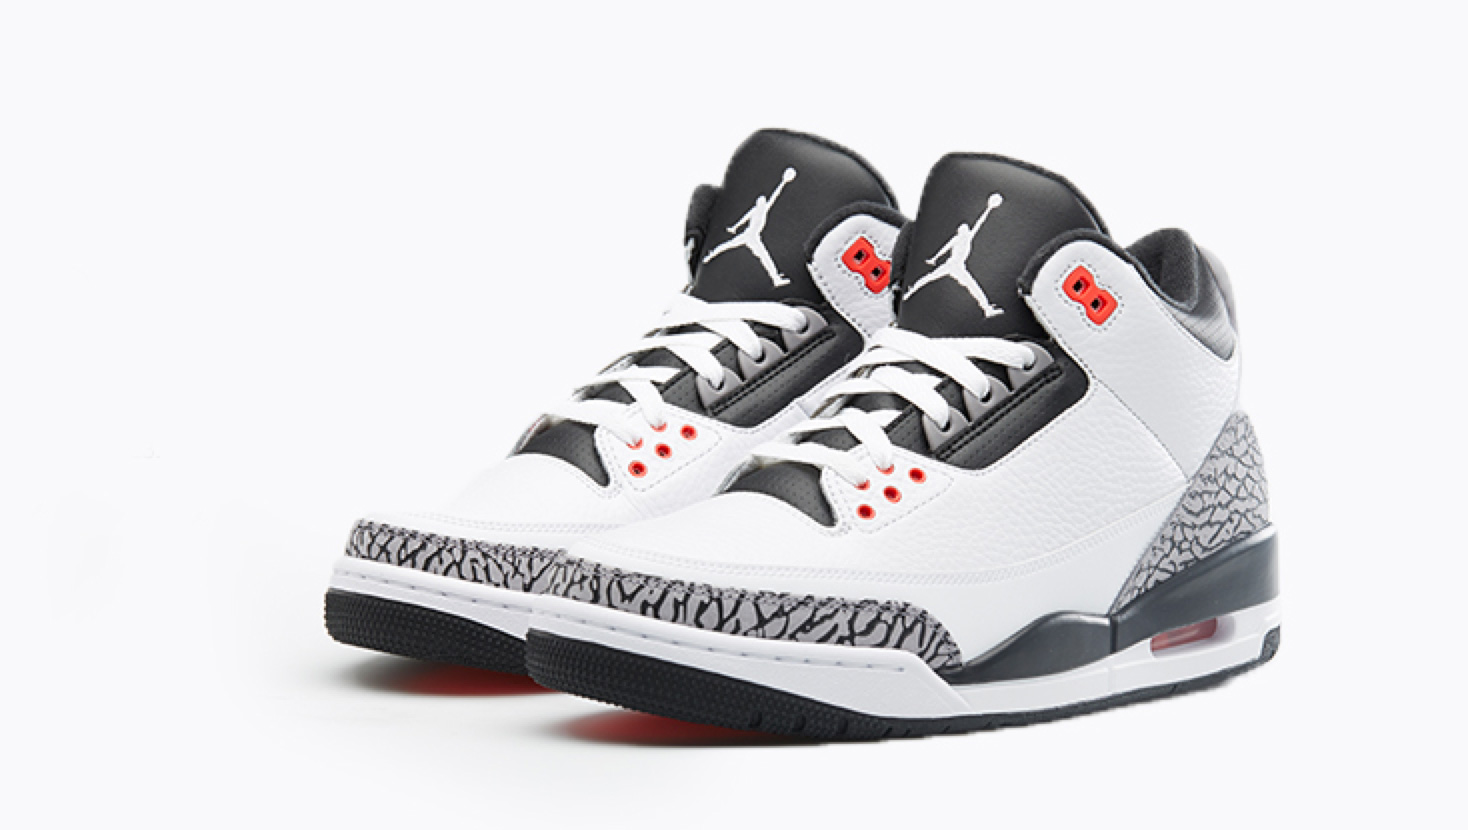 Nike Air Jordan 3 Retro 'Infrared 23'